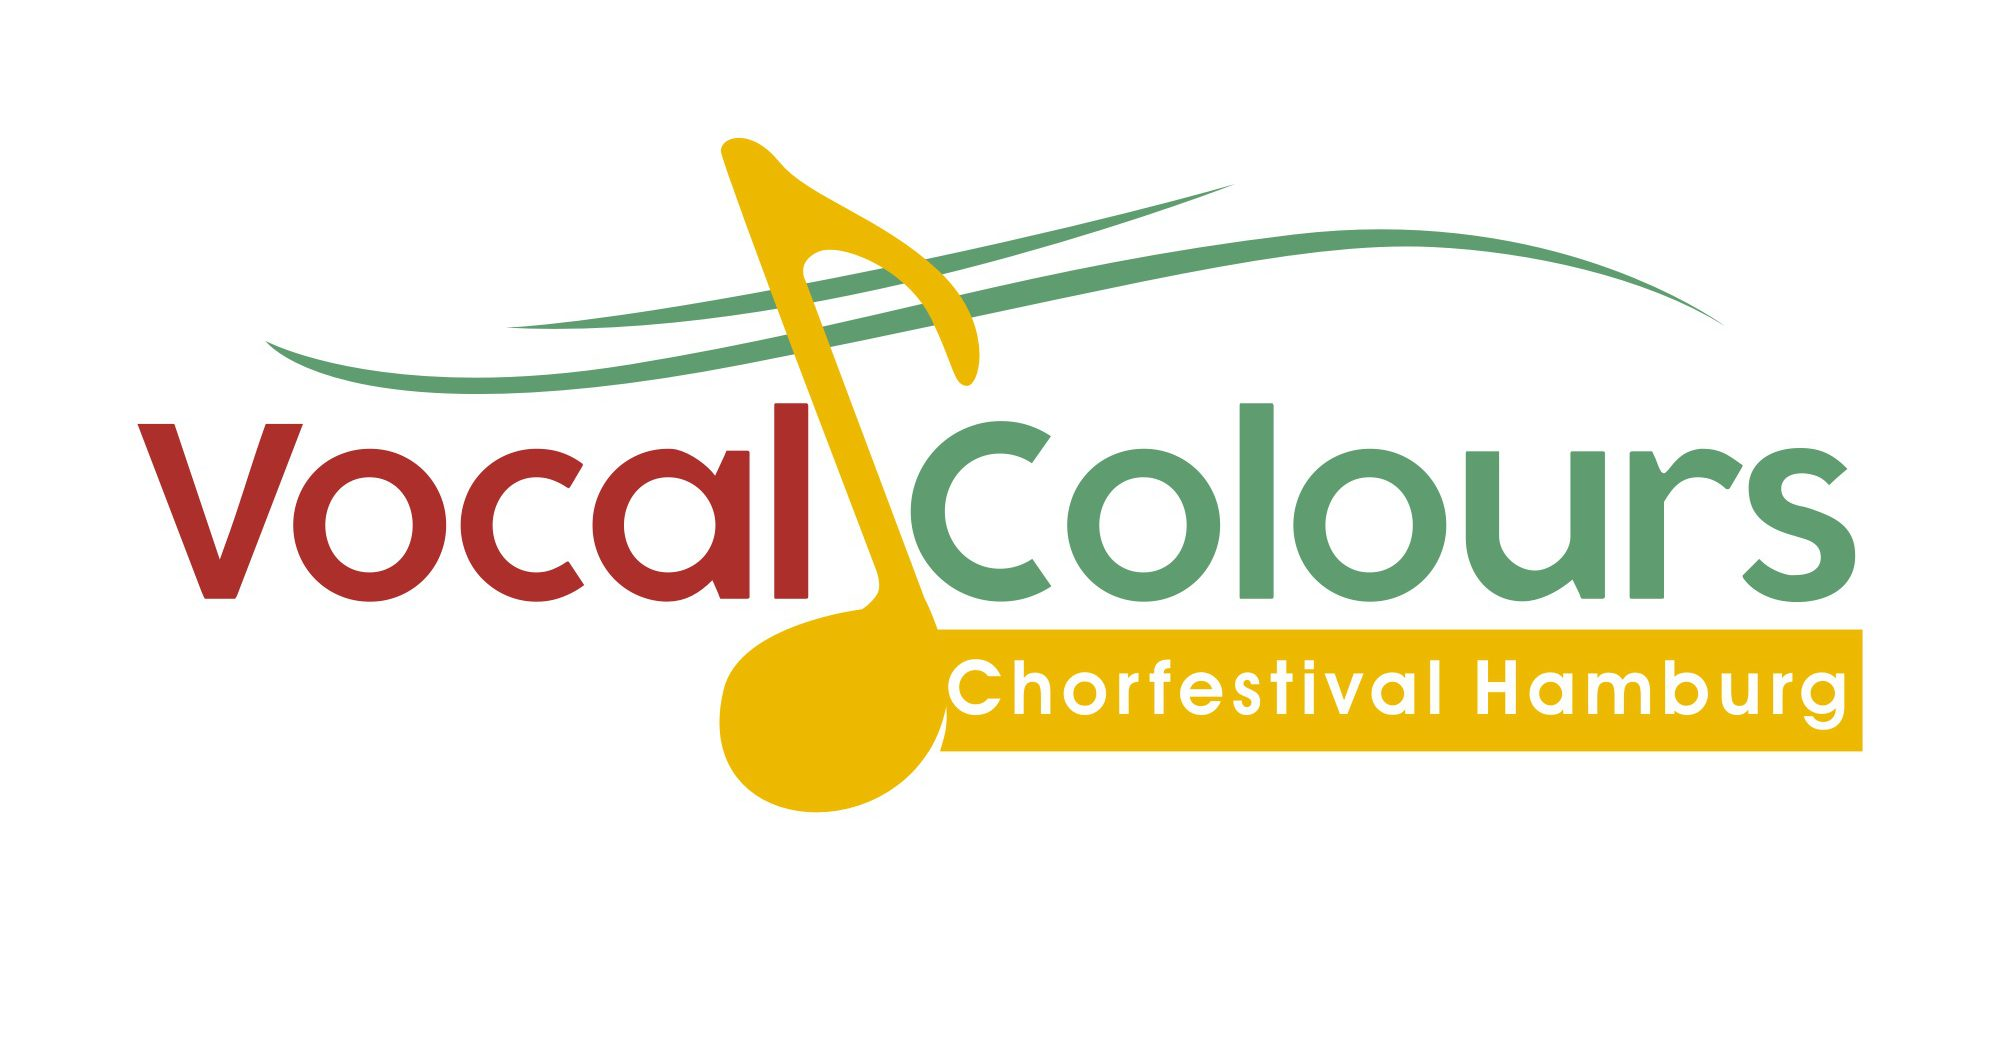 Vocal Colours Chorfestival